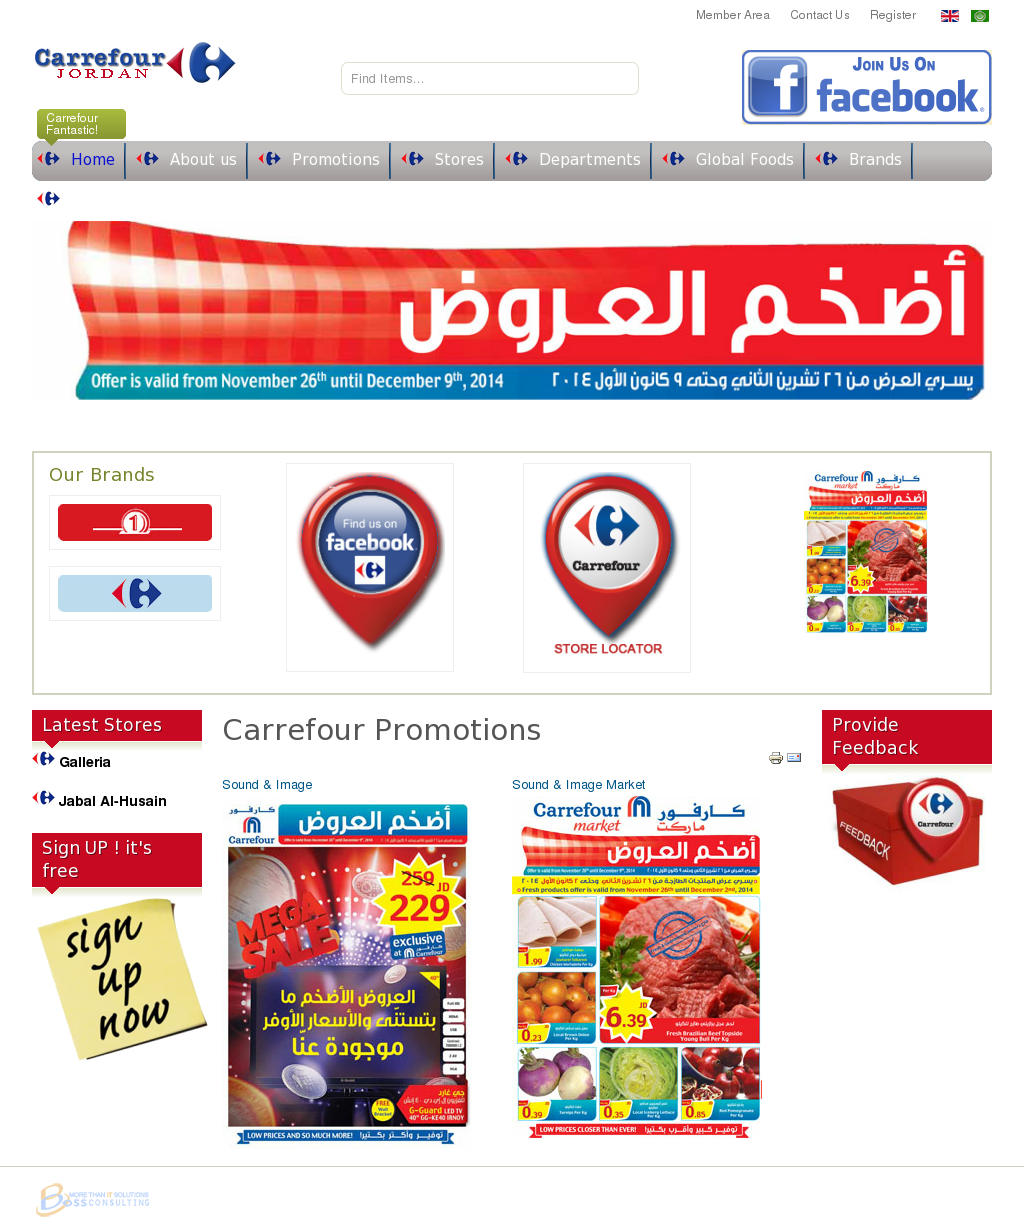 Carrefour Jordan Competitors, Revenue and Employees - Owler